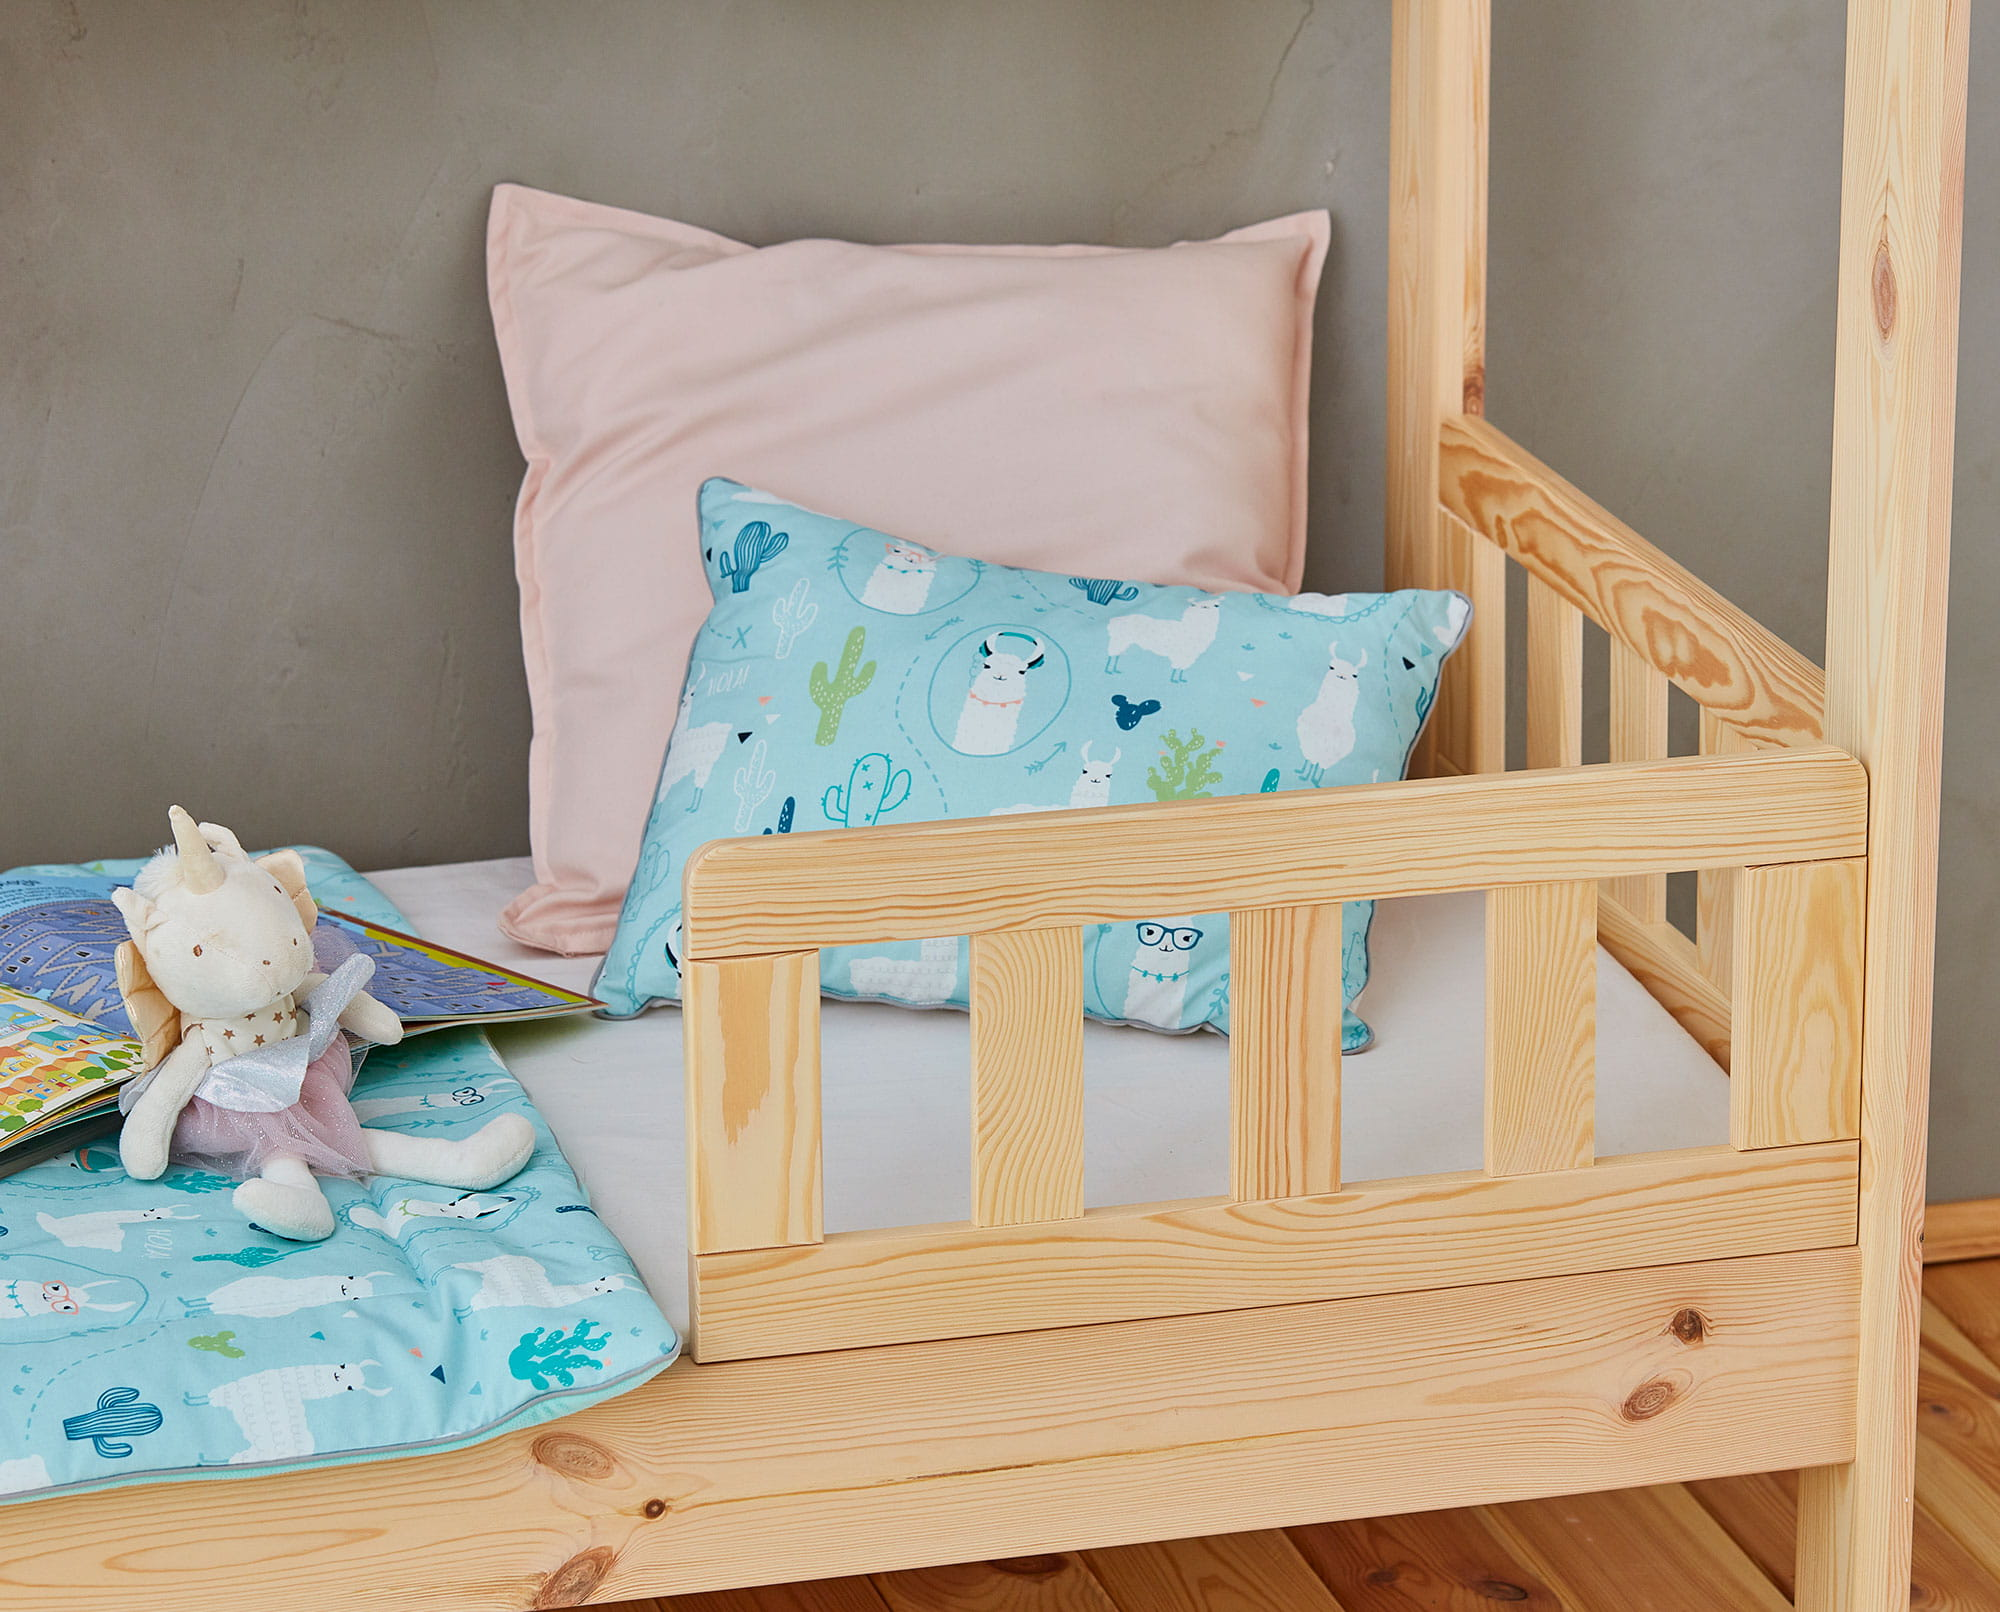 House_bed_160x70_rail_CLASSIC_2.jpg